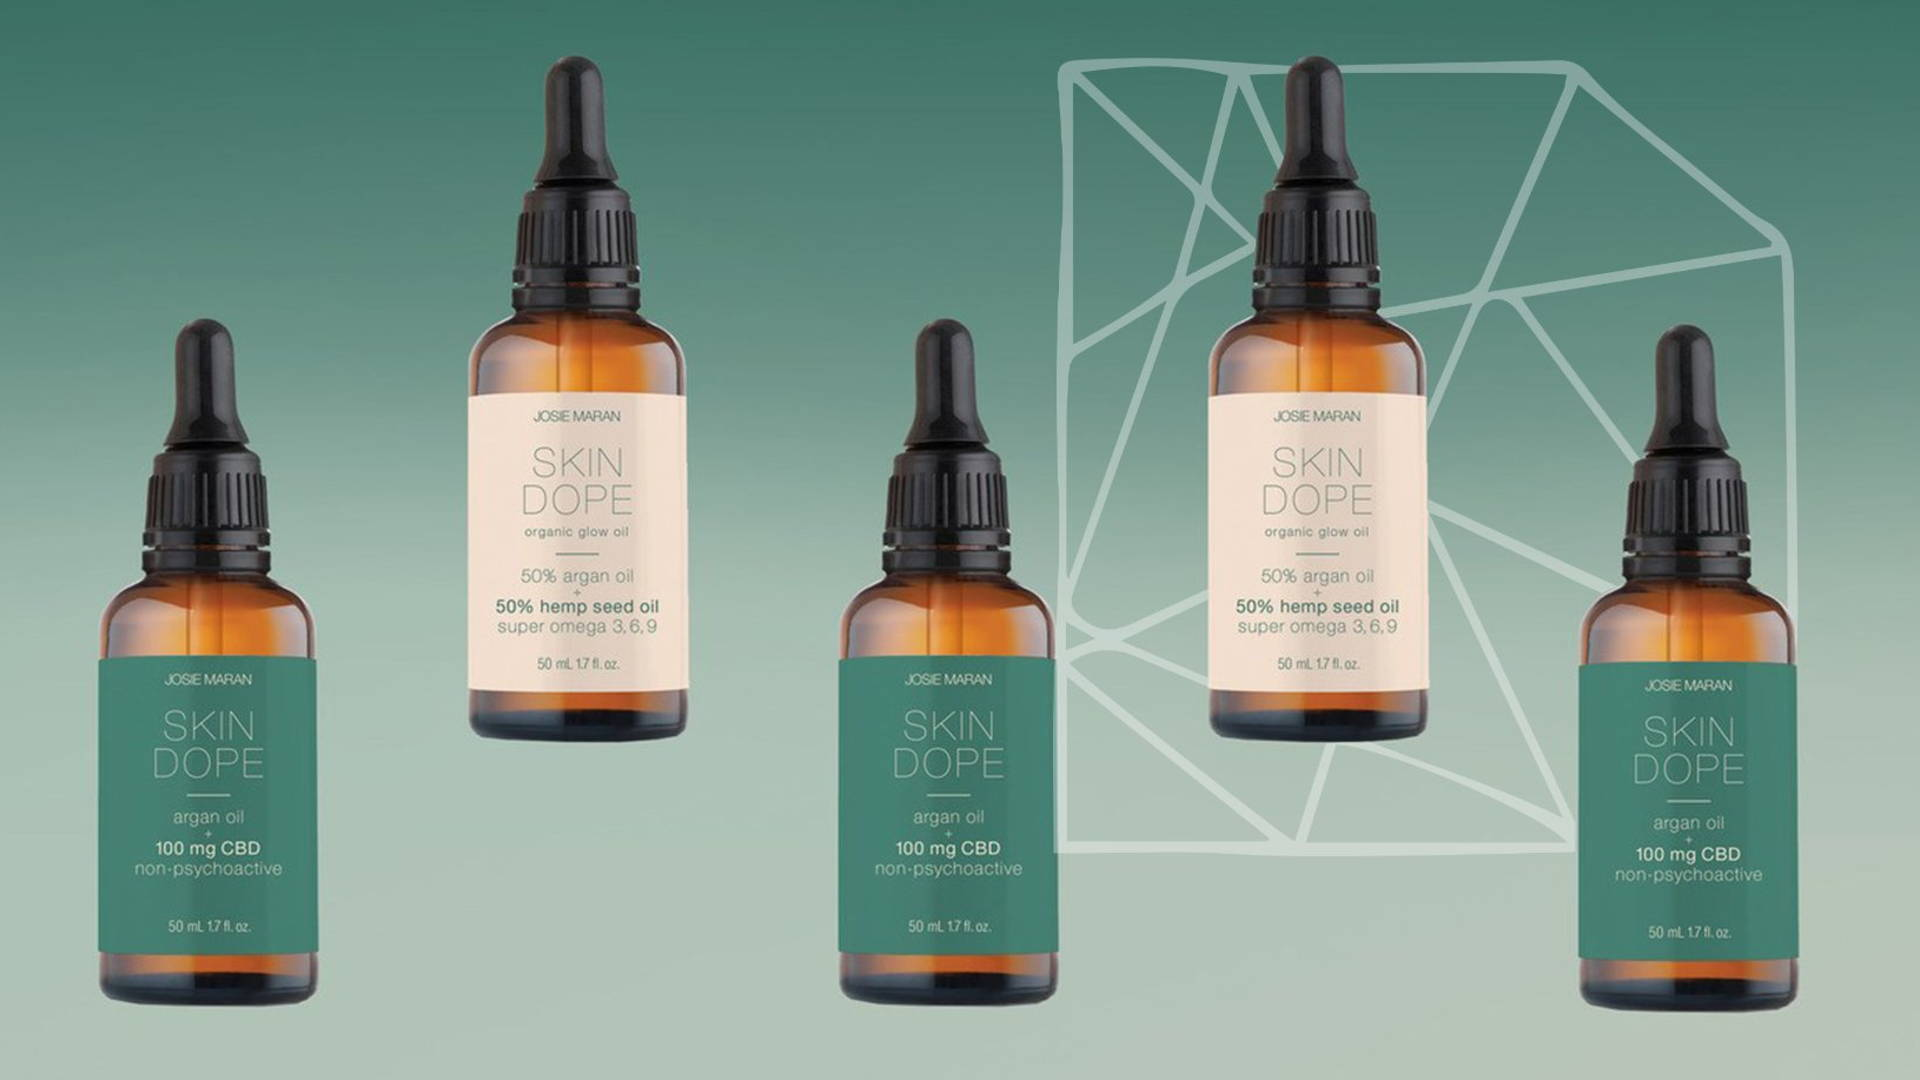 6 CBD-Infused Beauty & Wellness Products To Add To Your Collection